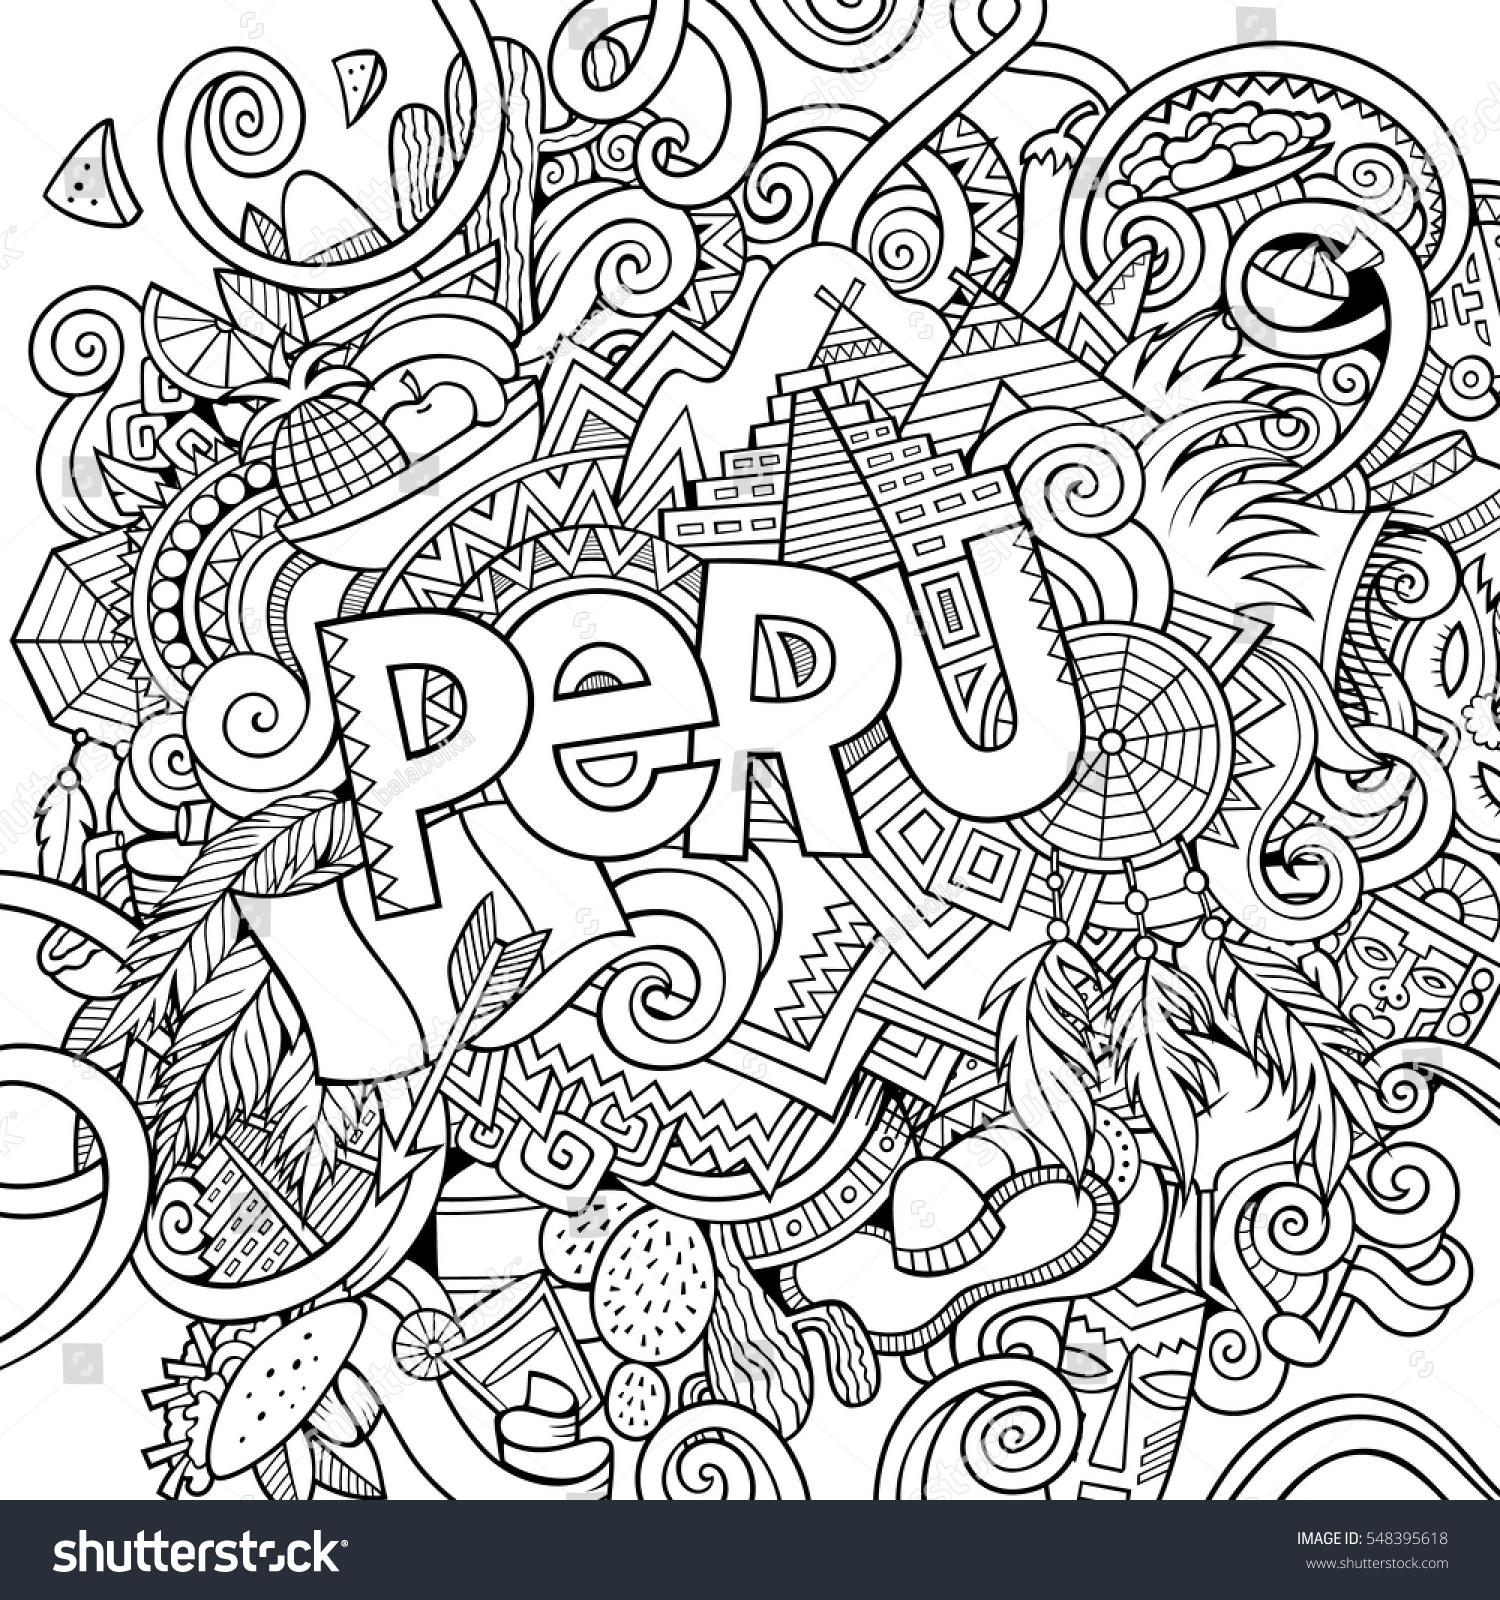 Stock vector music hand lettering and doodles elements - Peru Country Hand Lettering And Doodles Elements And Symbols Background Vector Hand Drawn Sketchy Illustration